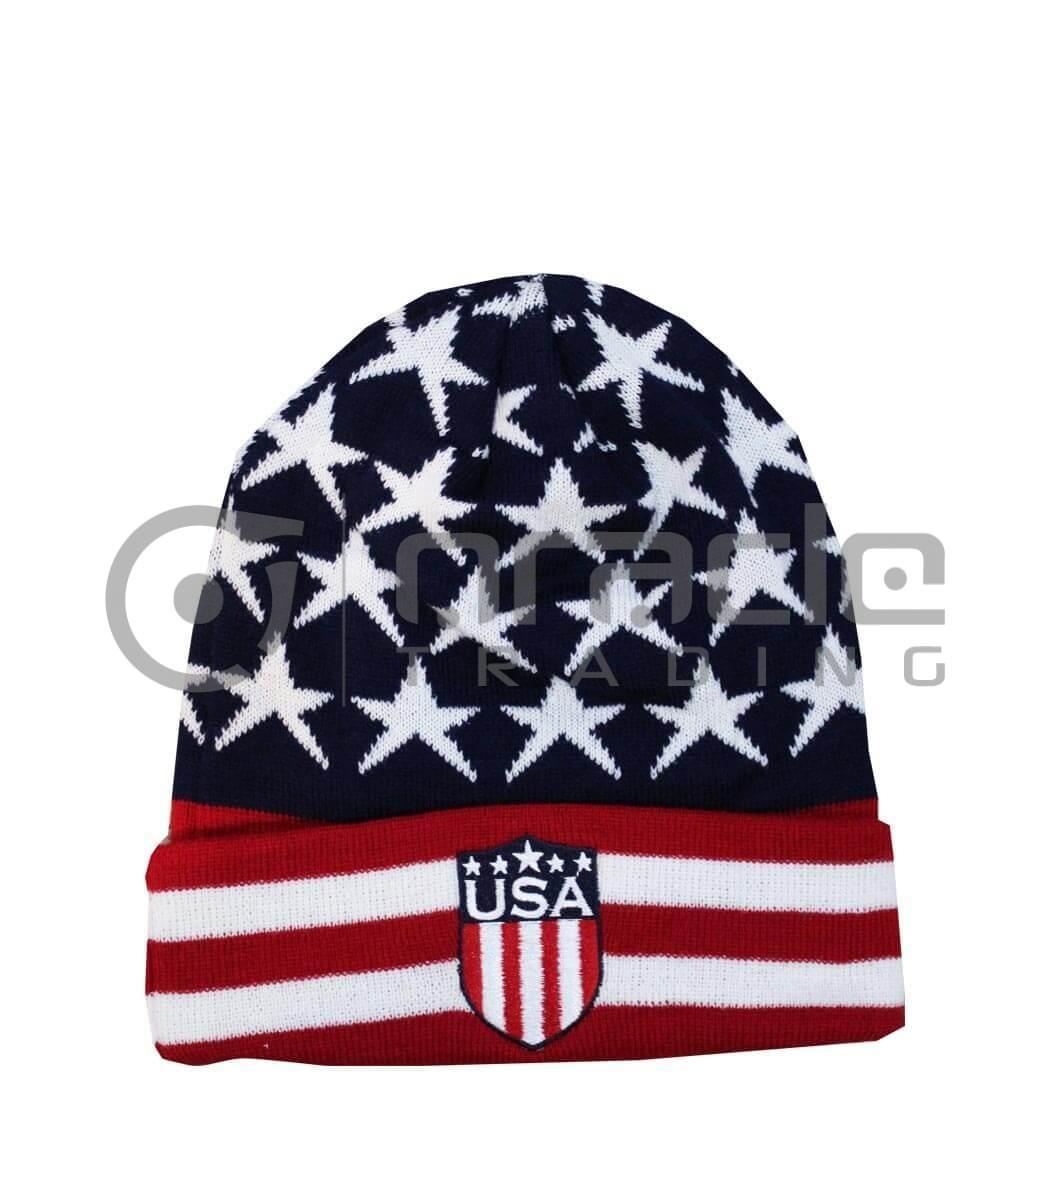 USA Fold-up Beanie